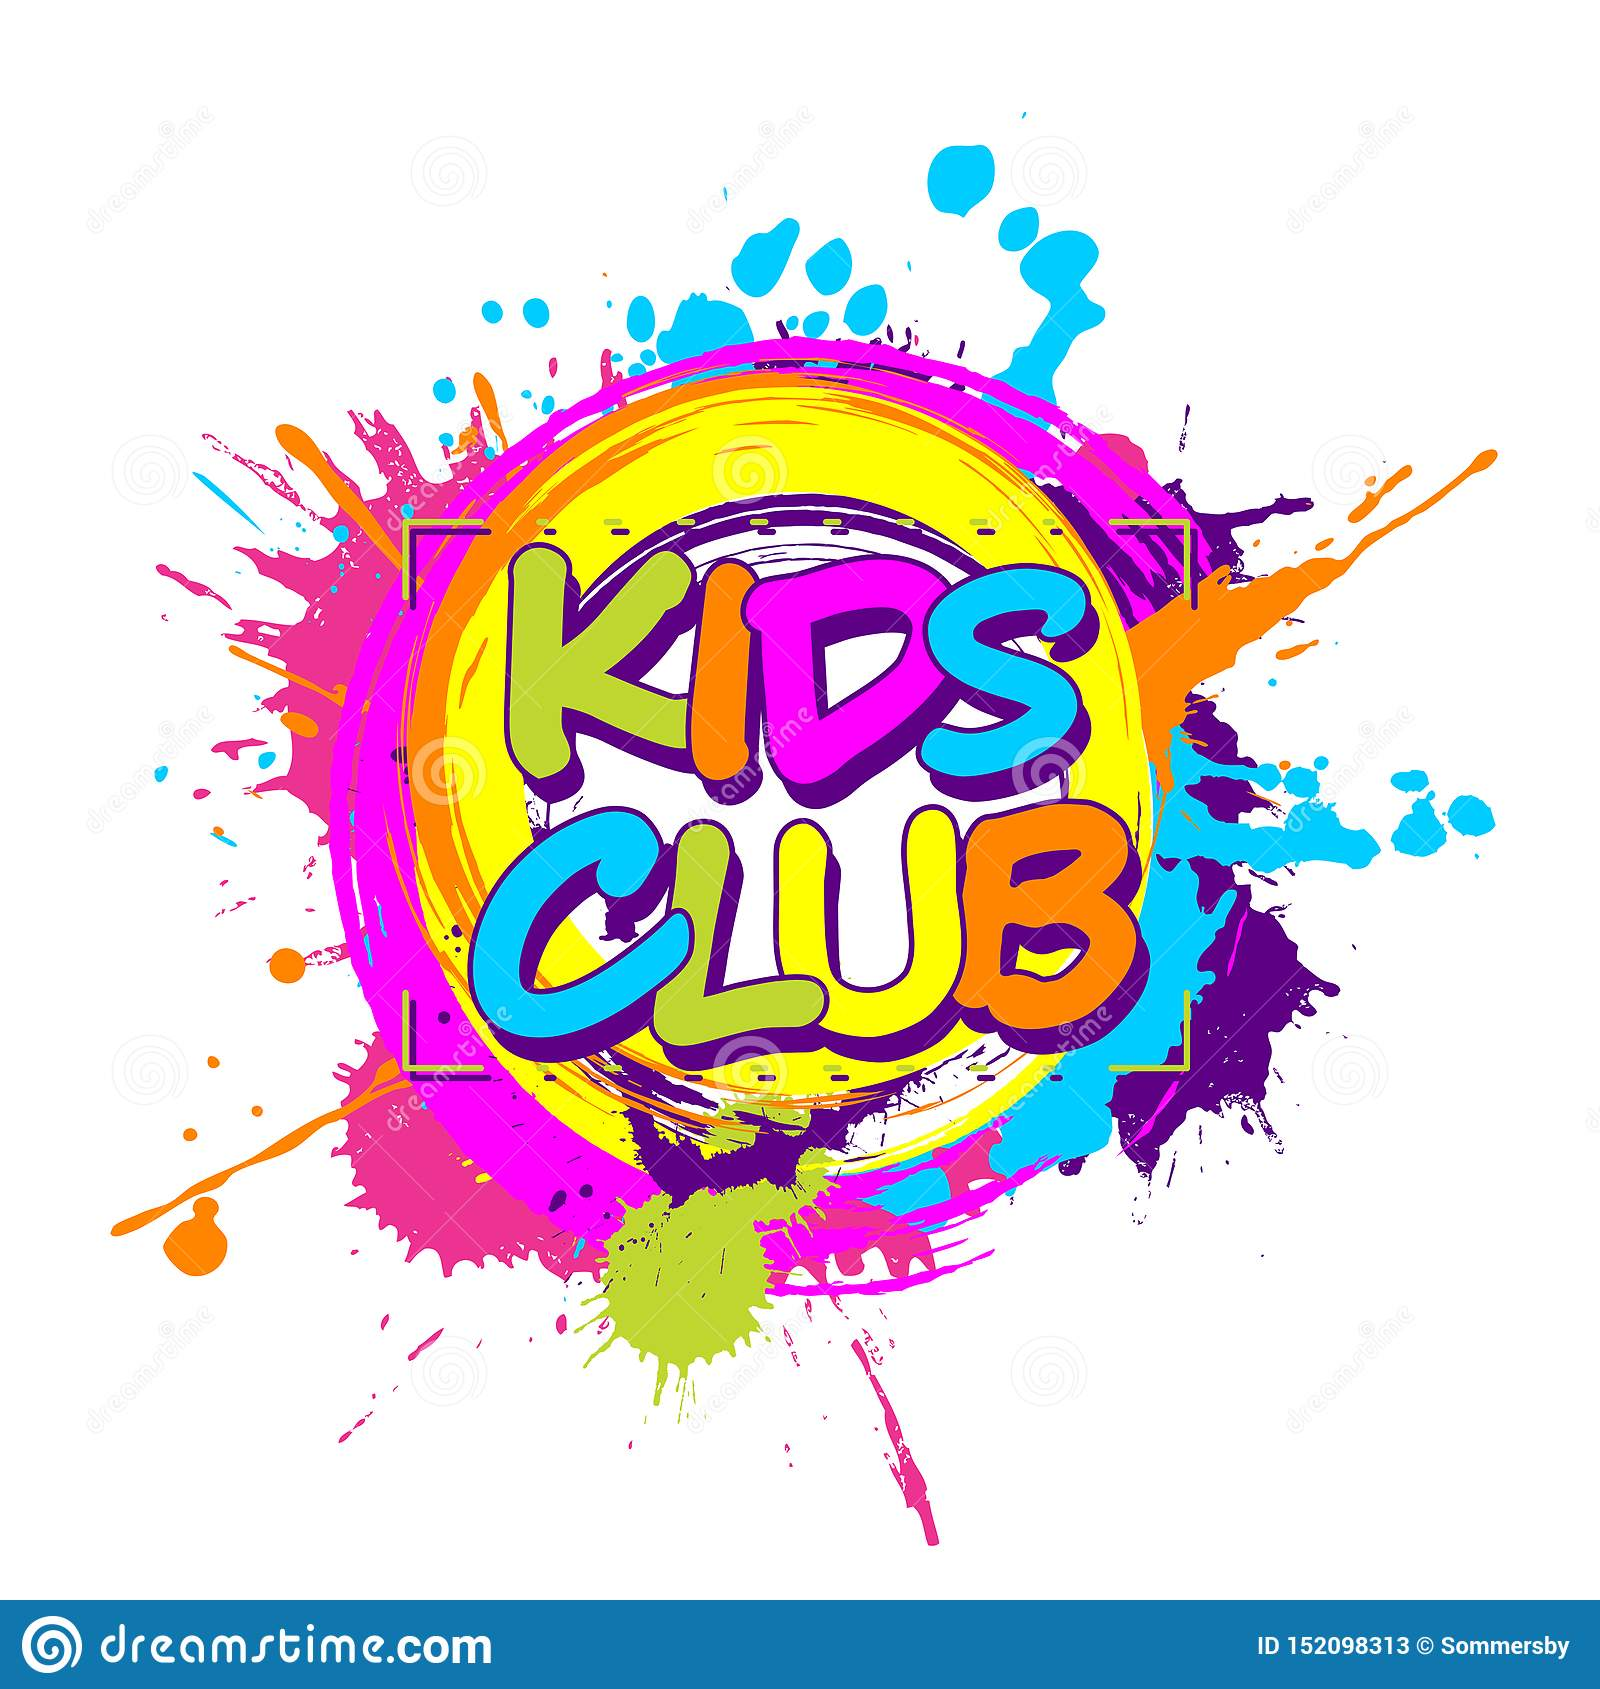 Colorful Paint Splashes With Circular Kids Club Emblem For